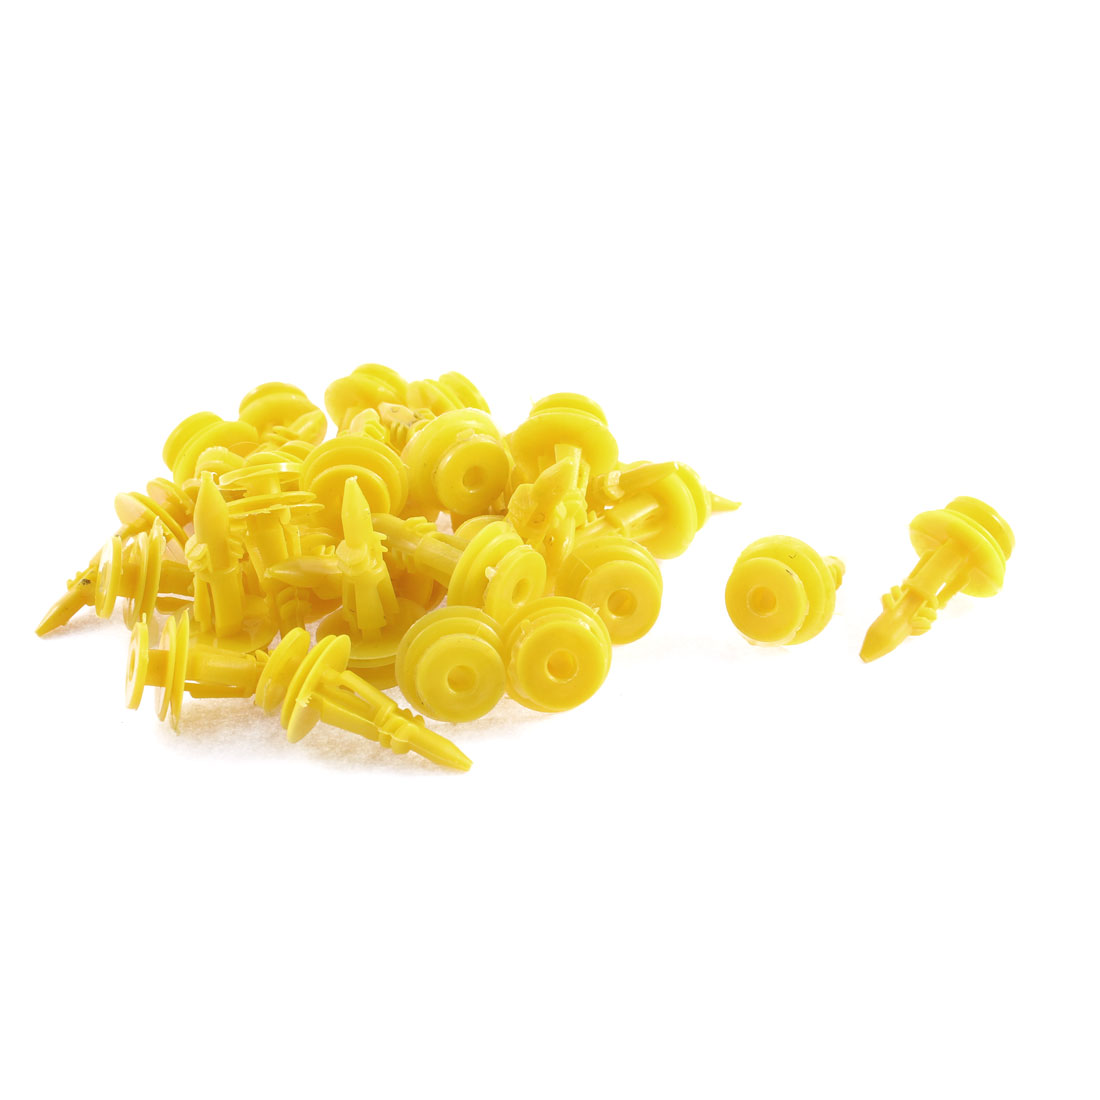 32 Pcs Lemon Yellow Door Card Trim Plastic Retainer Clips 8 x 17 x 26mm for Ford